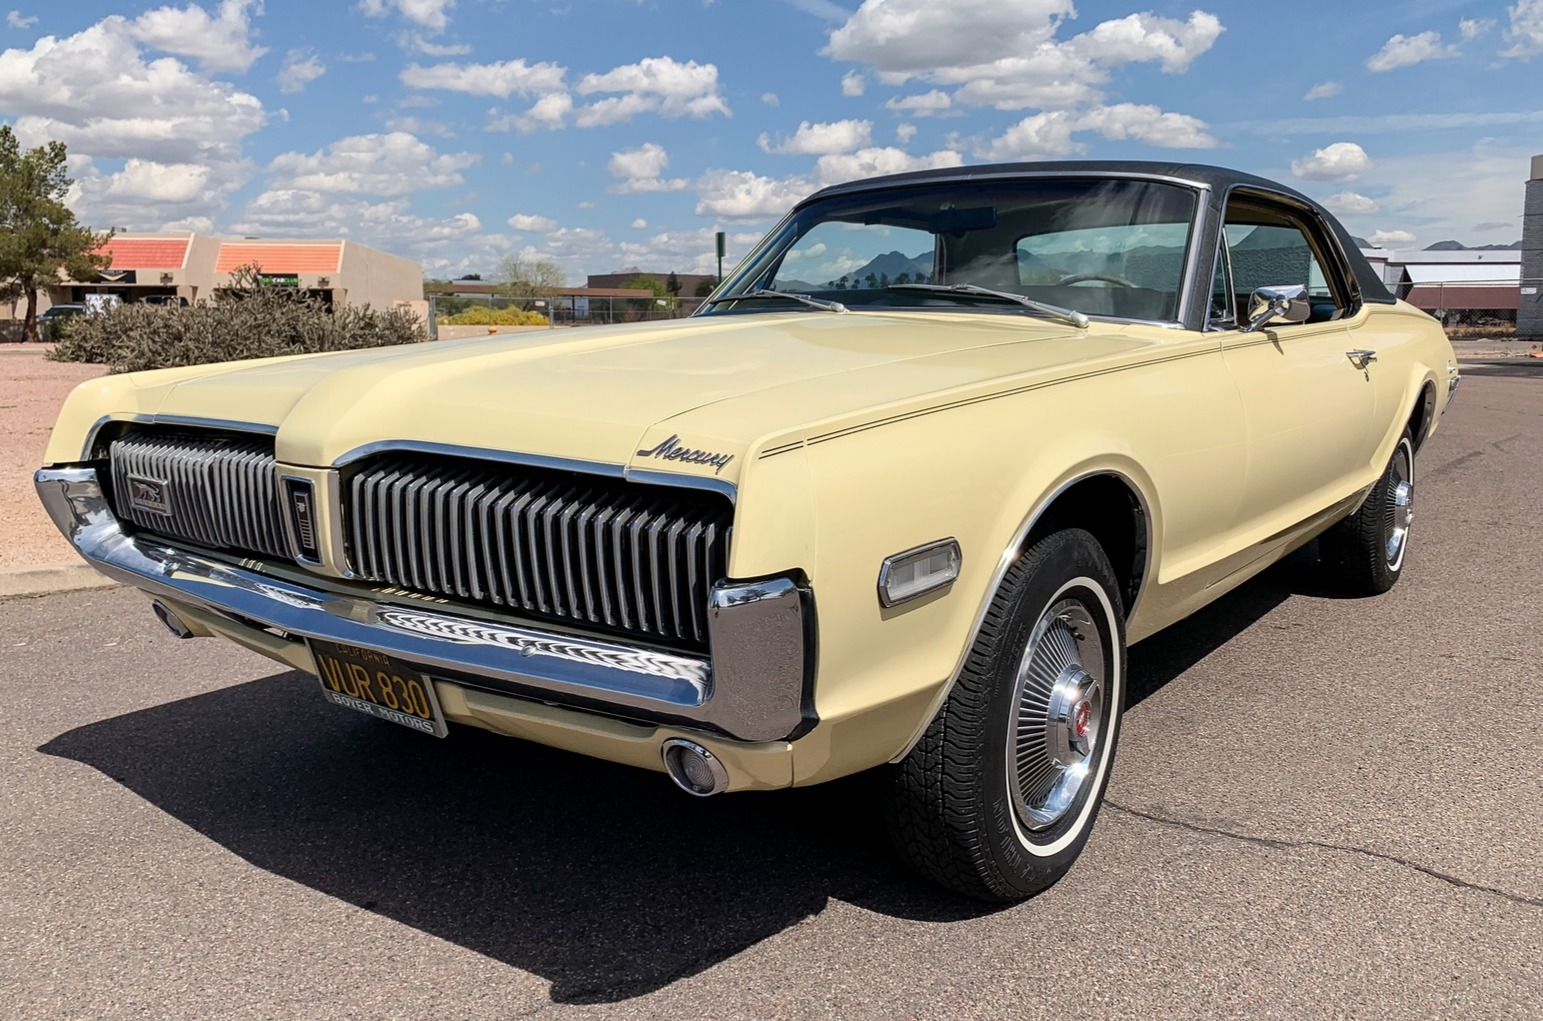 hight resolution of 1968 mercury cougar for sale on bat auctions sold for 20 550 on may 27 2019 lot 19 248 bring a trailer